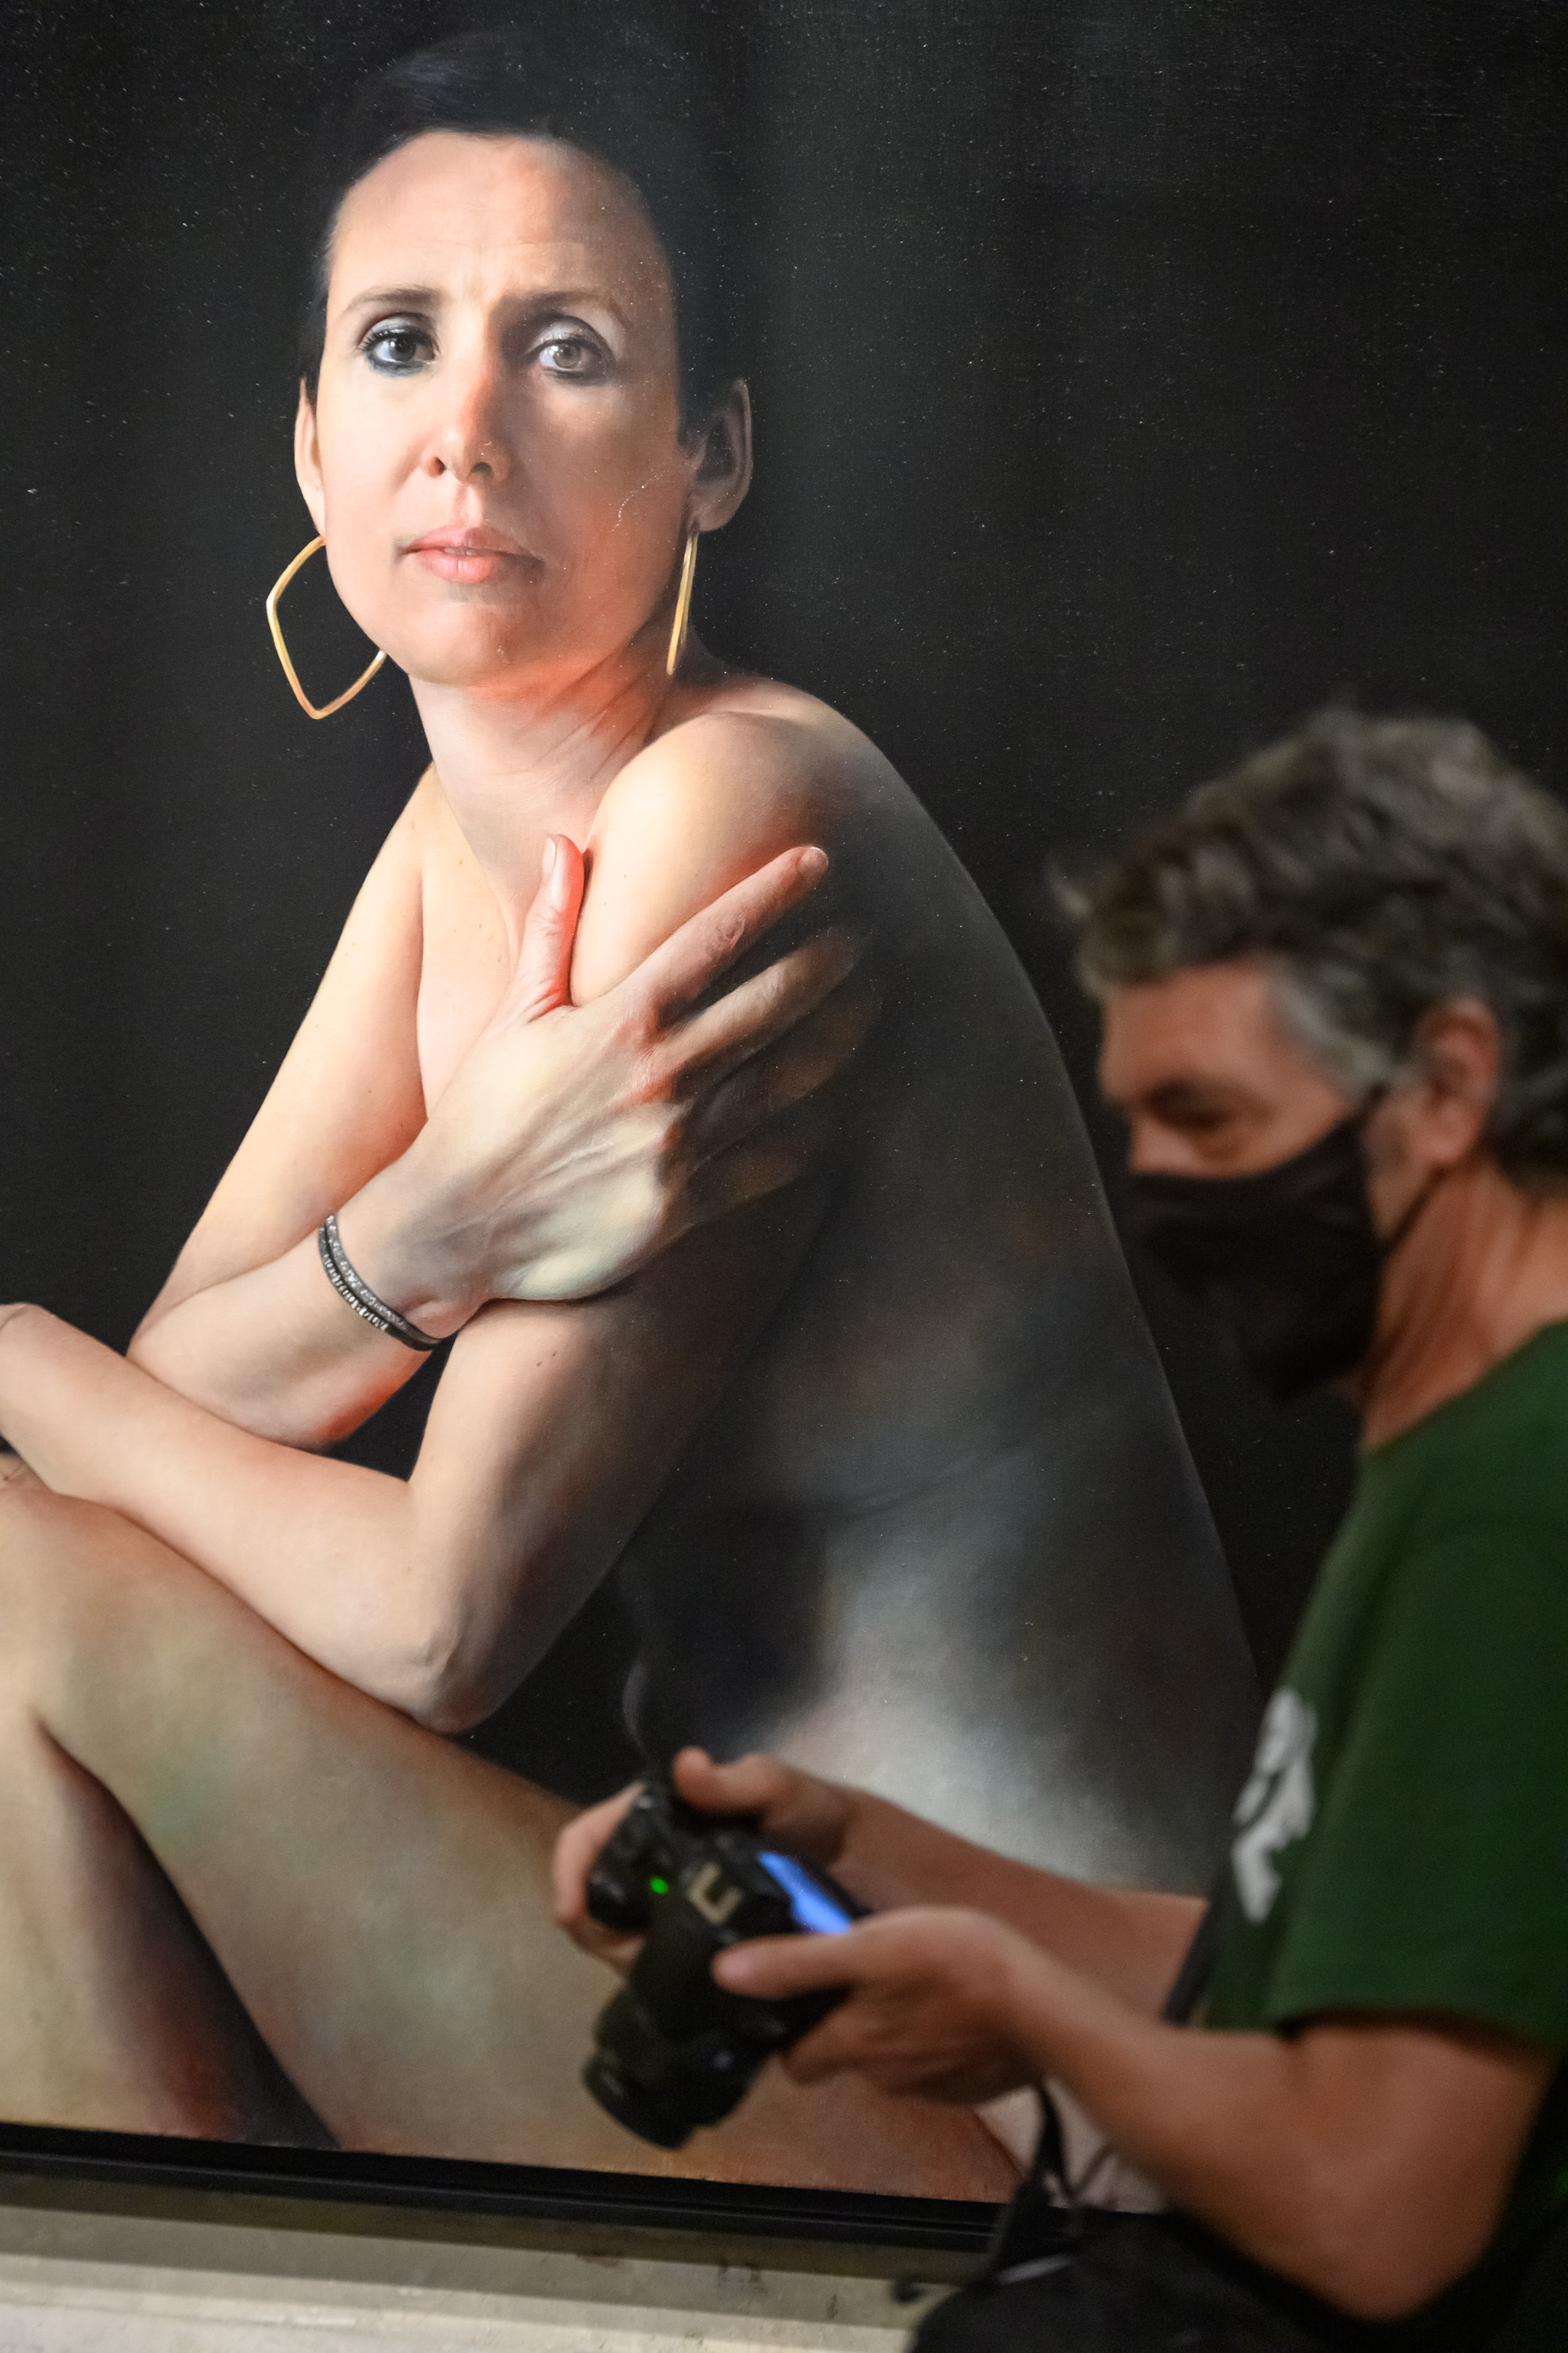 The MEAM exhibits the winning works in the modern portrait contest ModPortrait 2020